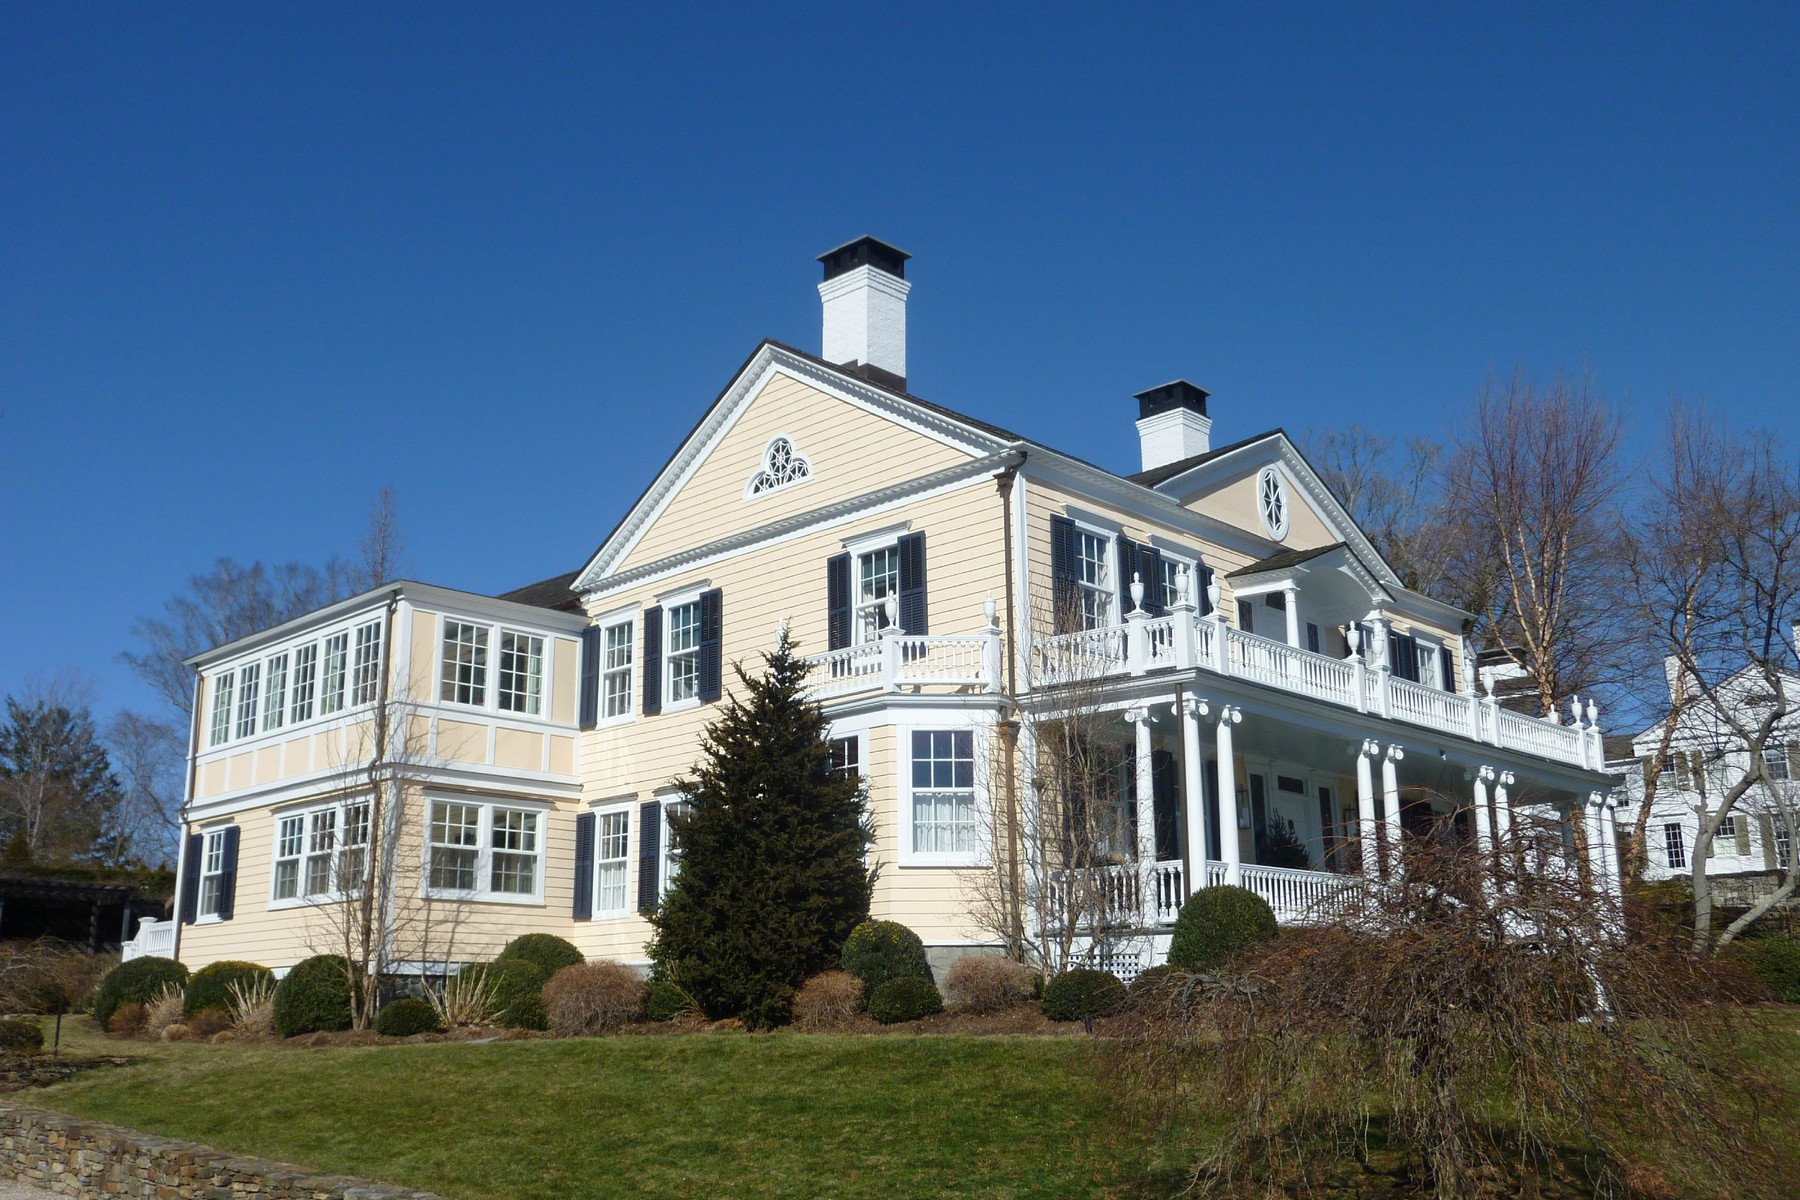 Single Family Home for Sale at CAPTAIN JEREMIAH STURGIS HOUSE 608 Harbor Road Southport, Fairfield, Connecticut, 06890 United States